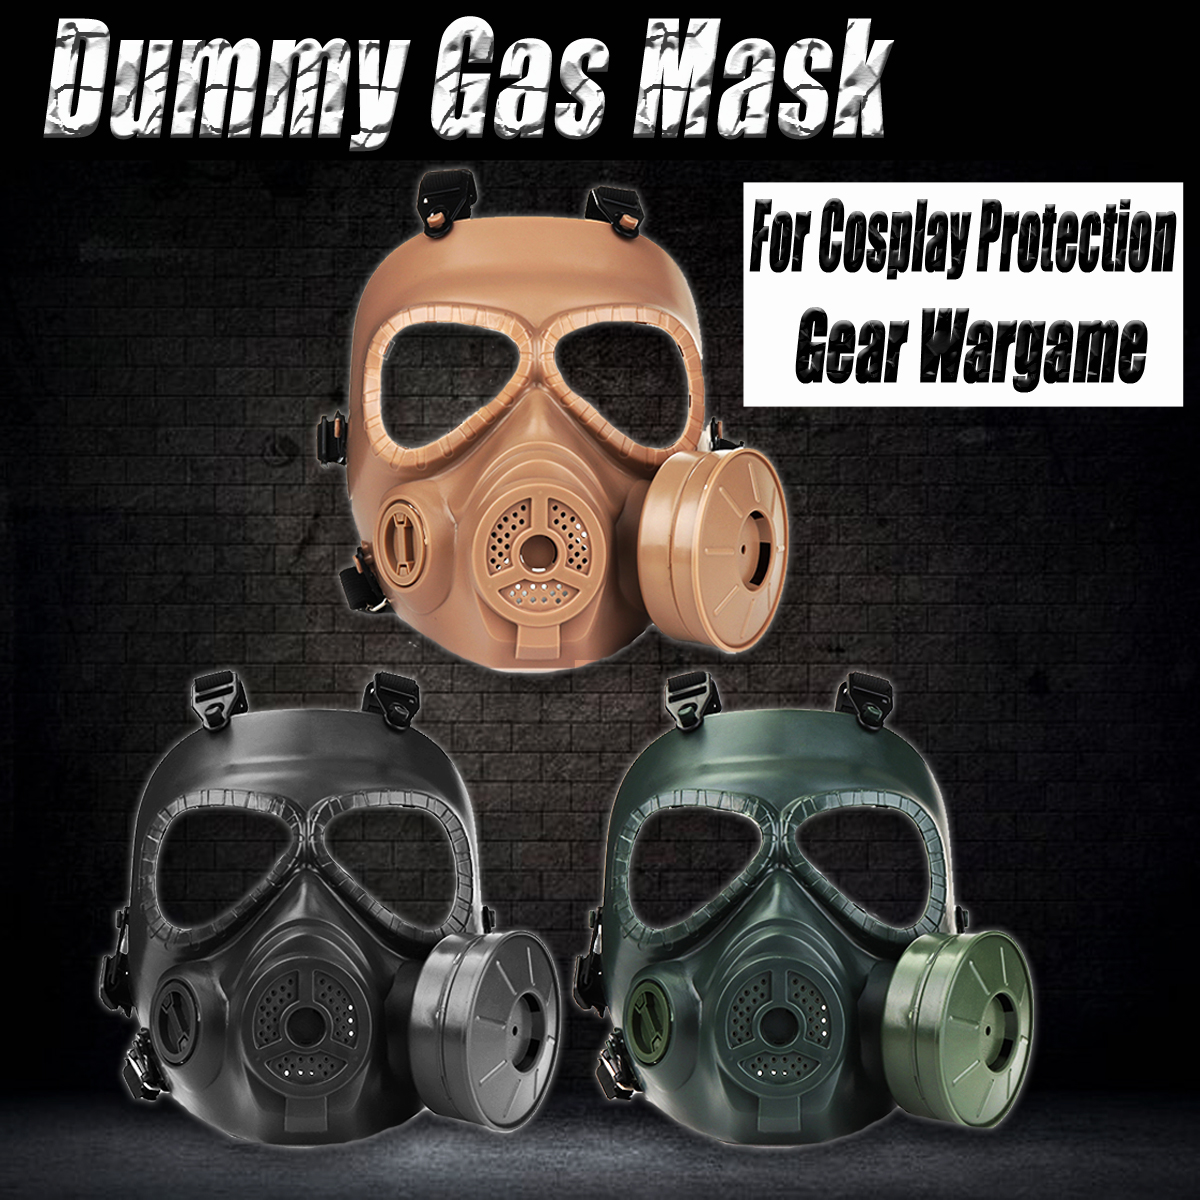 M04Gas Mask Use For Tactical Competition Dummy Gas Mask Fan multiple color Innovative Design For Cosplay Protection Gear WargameM04Gas Mask Use For Tactical Competition Dummy Gas Mask Fan multiple color Innovative Design For Cosplay Protection Gear Wargame